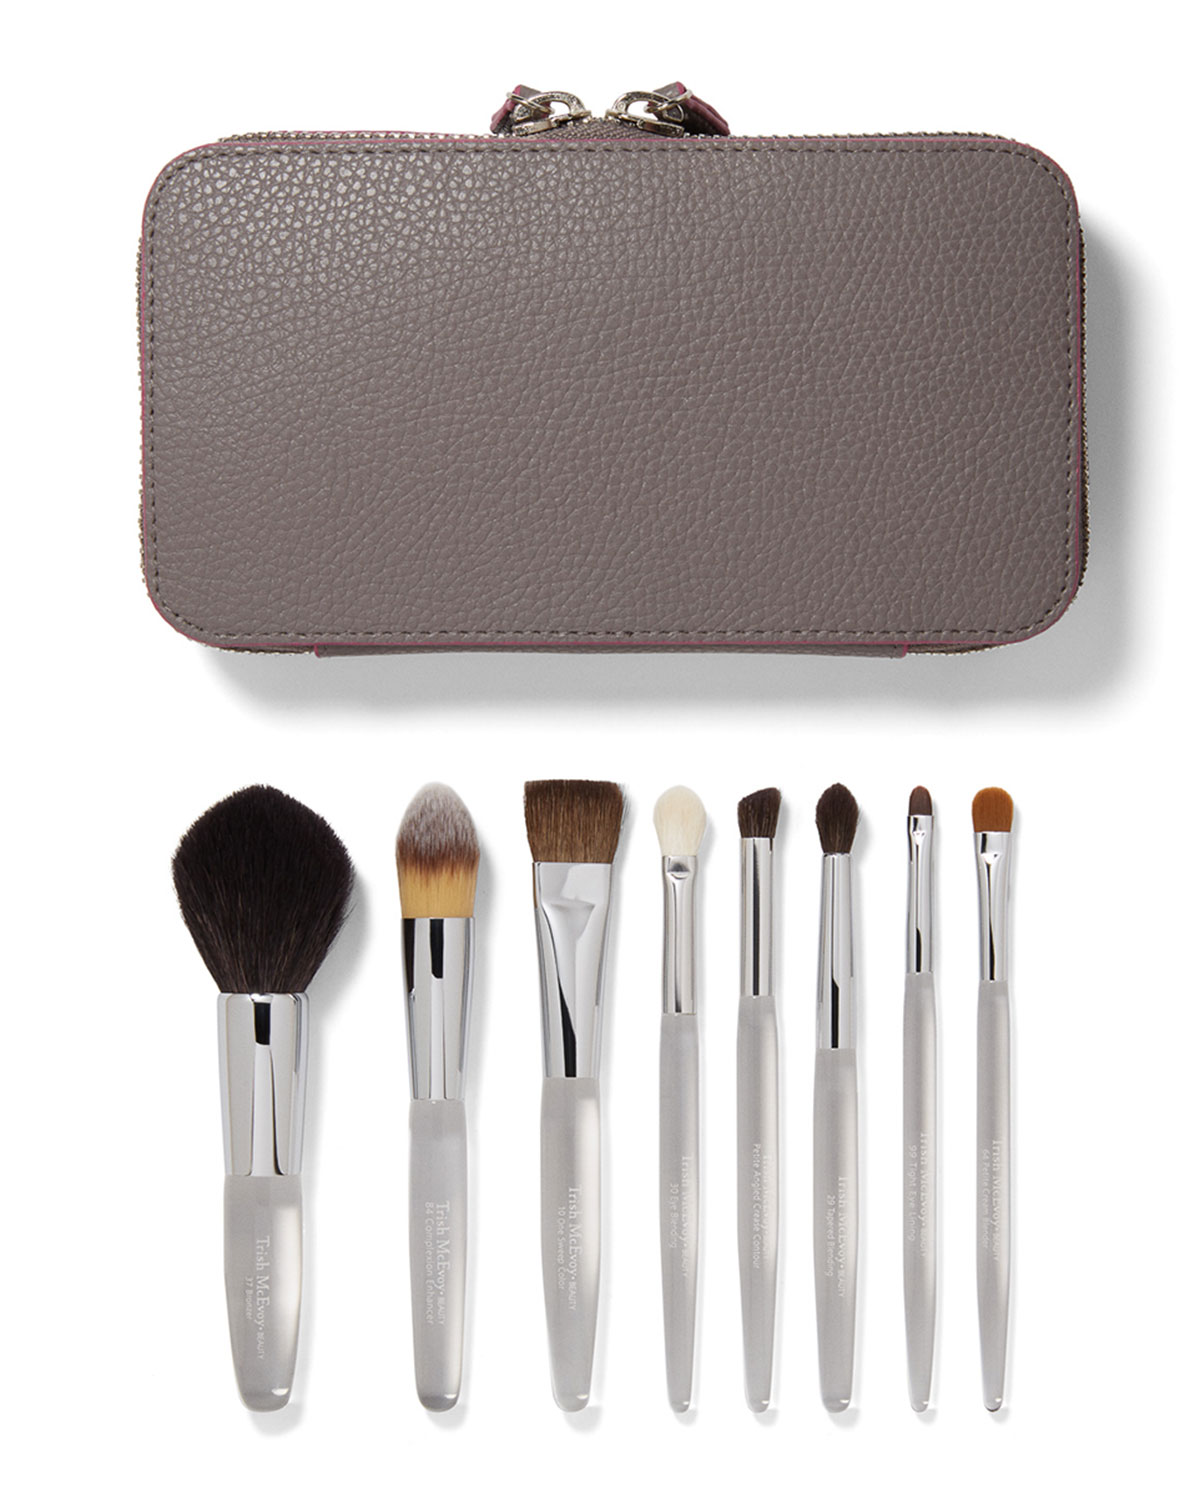 Fall 2018 Makeup Brush Set